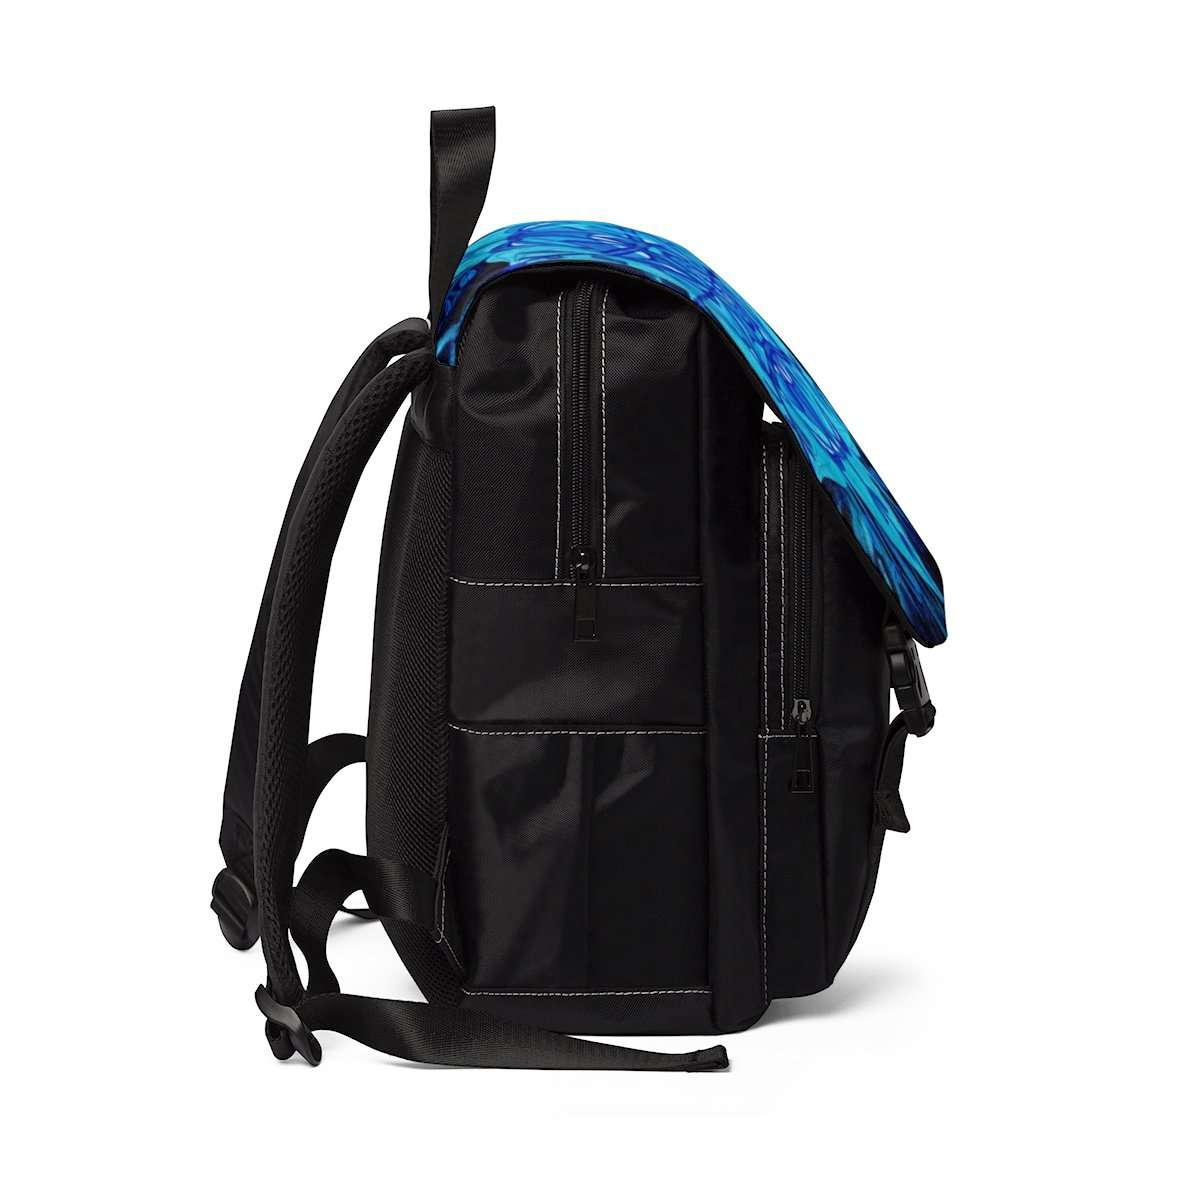 Winter - Unisex Casual Shoulder Backpack